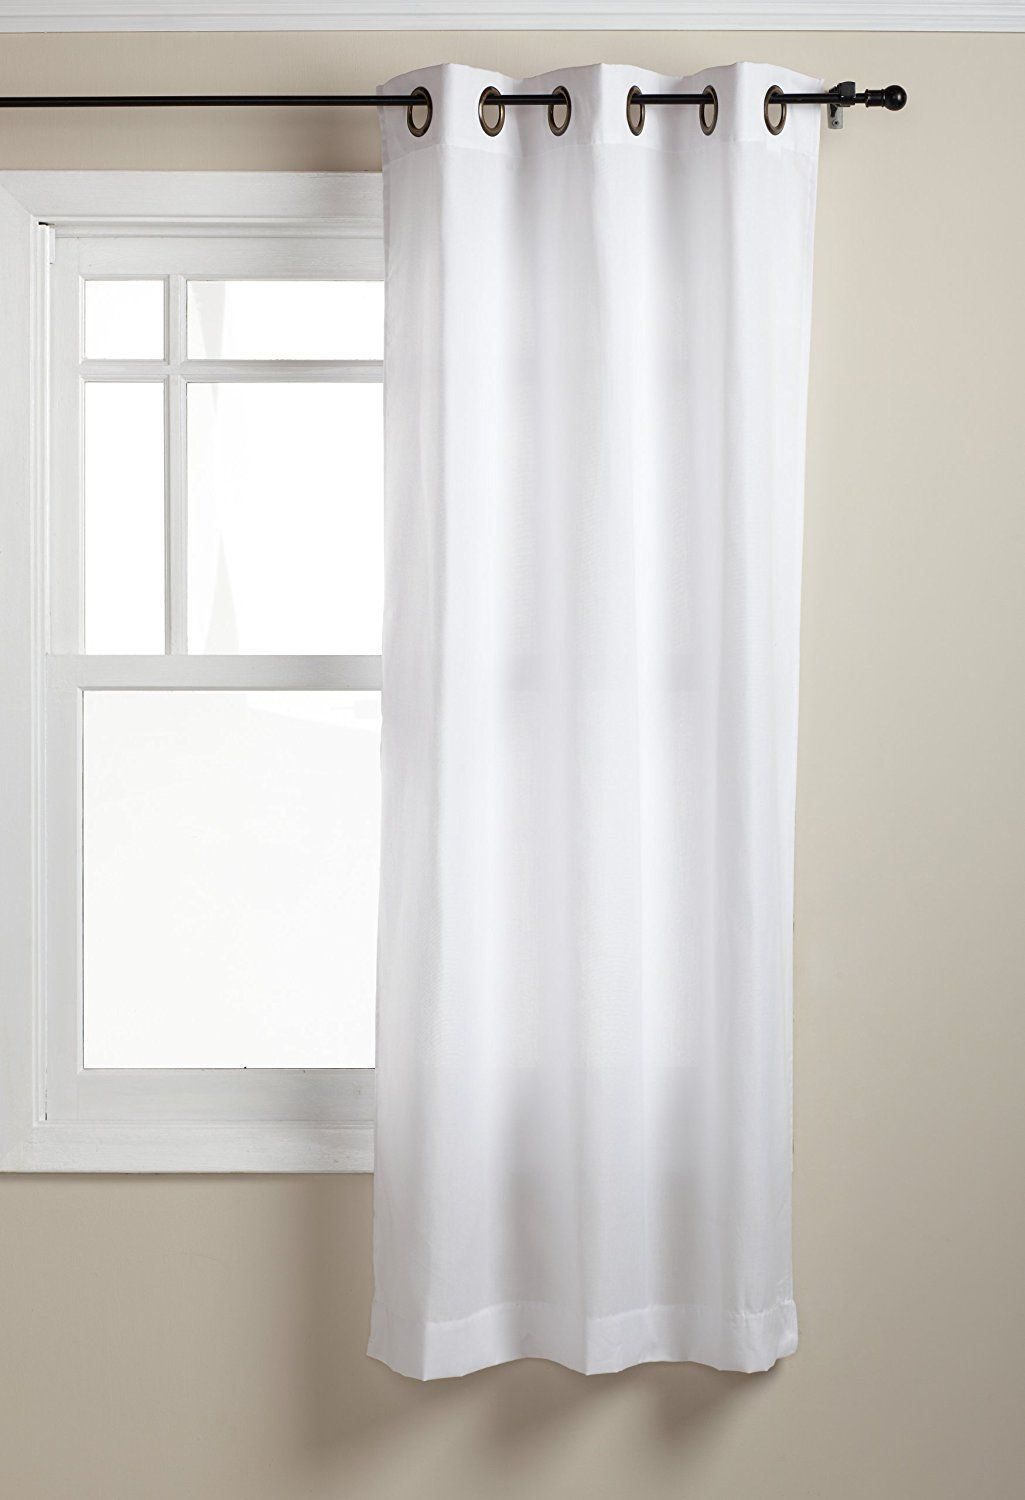 Choosing Bathroom Window Curtains